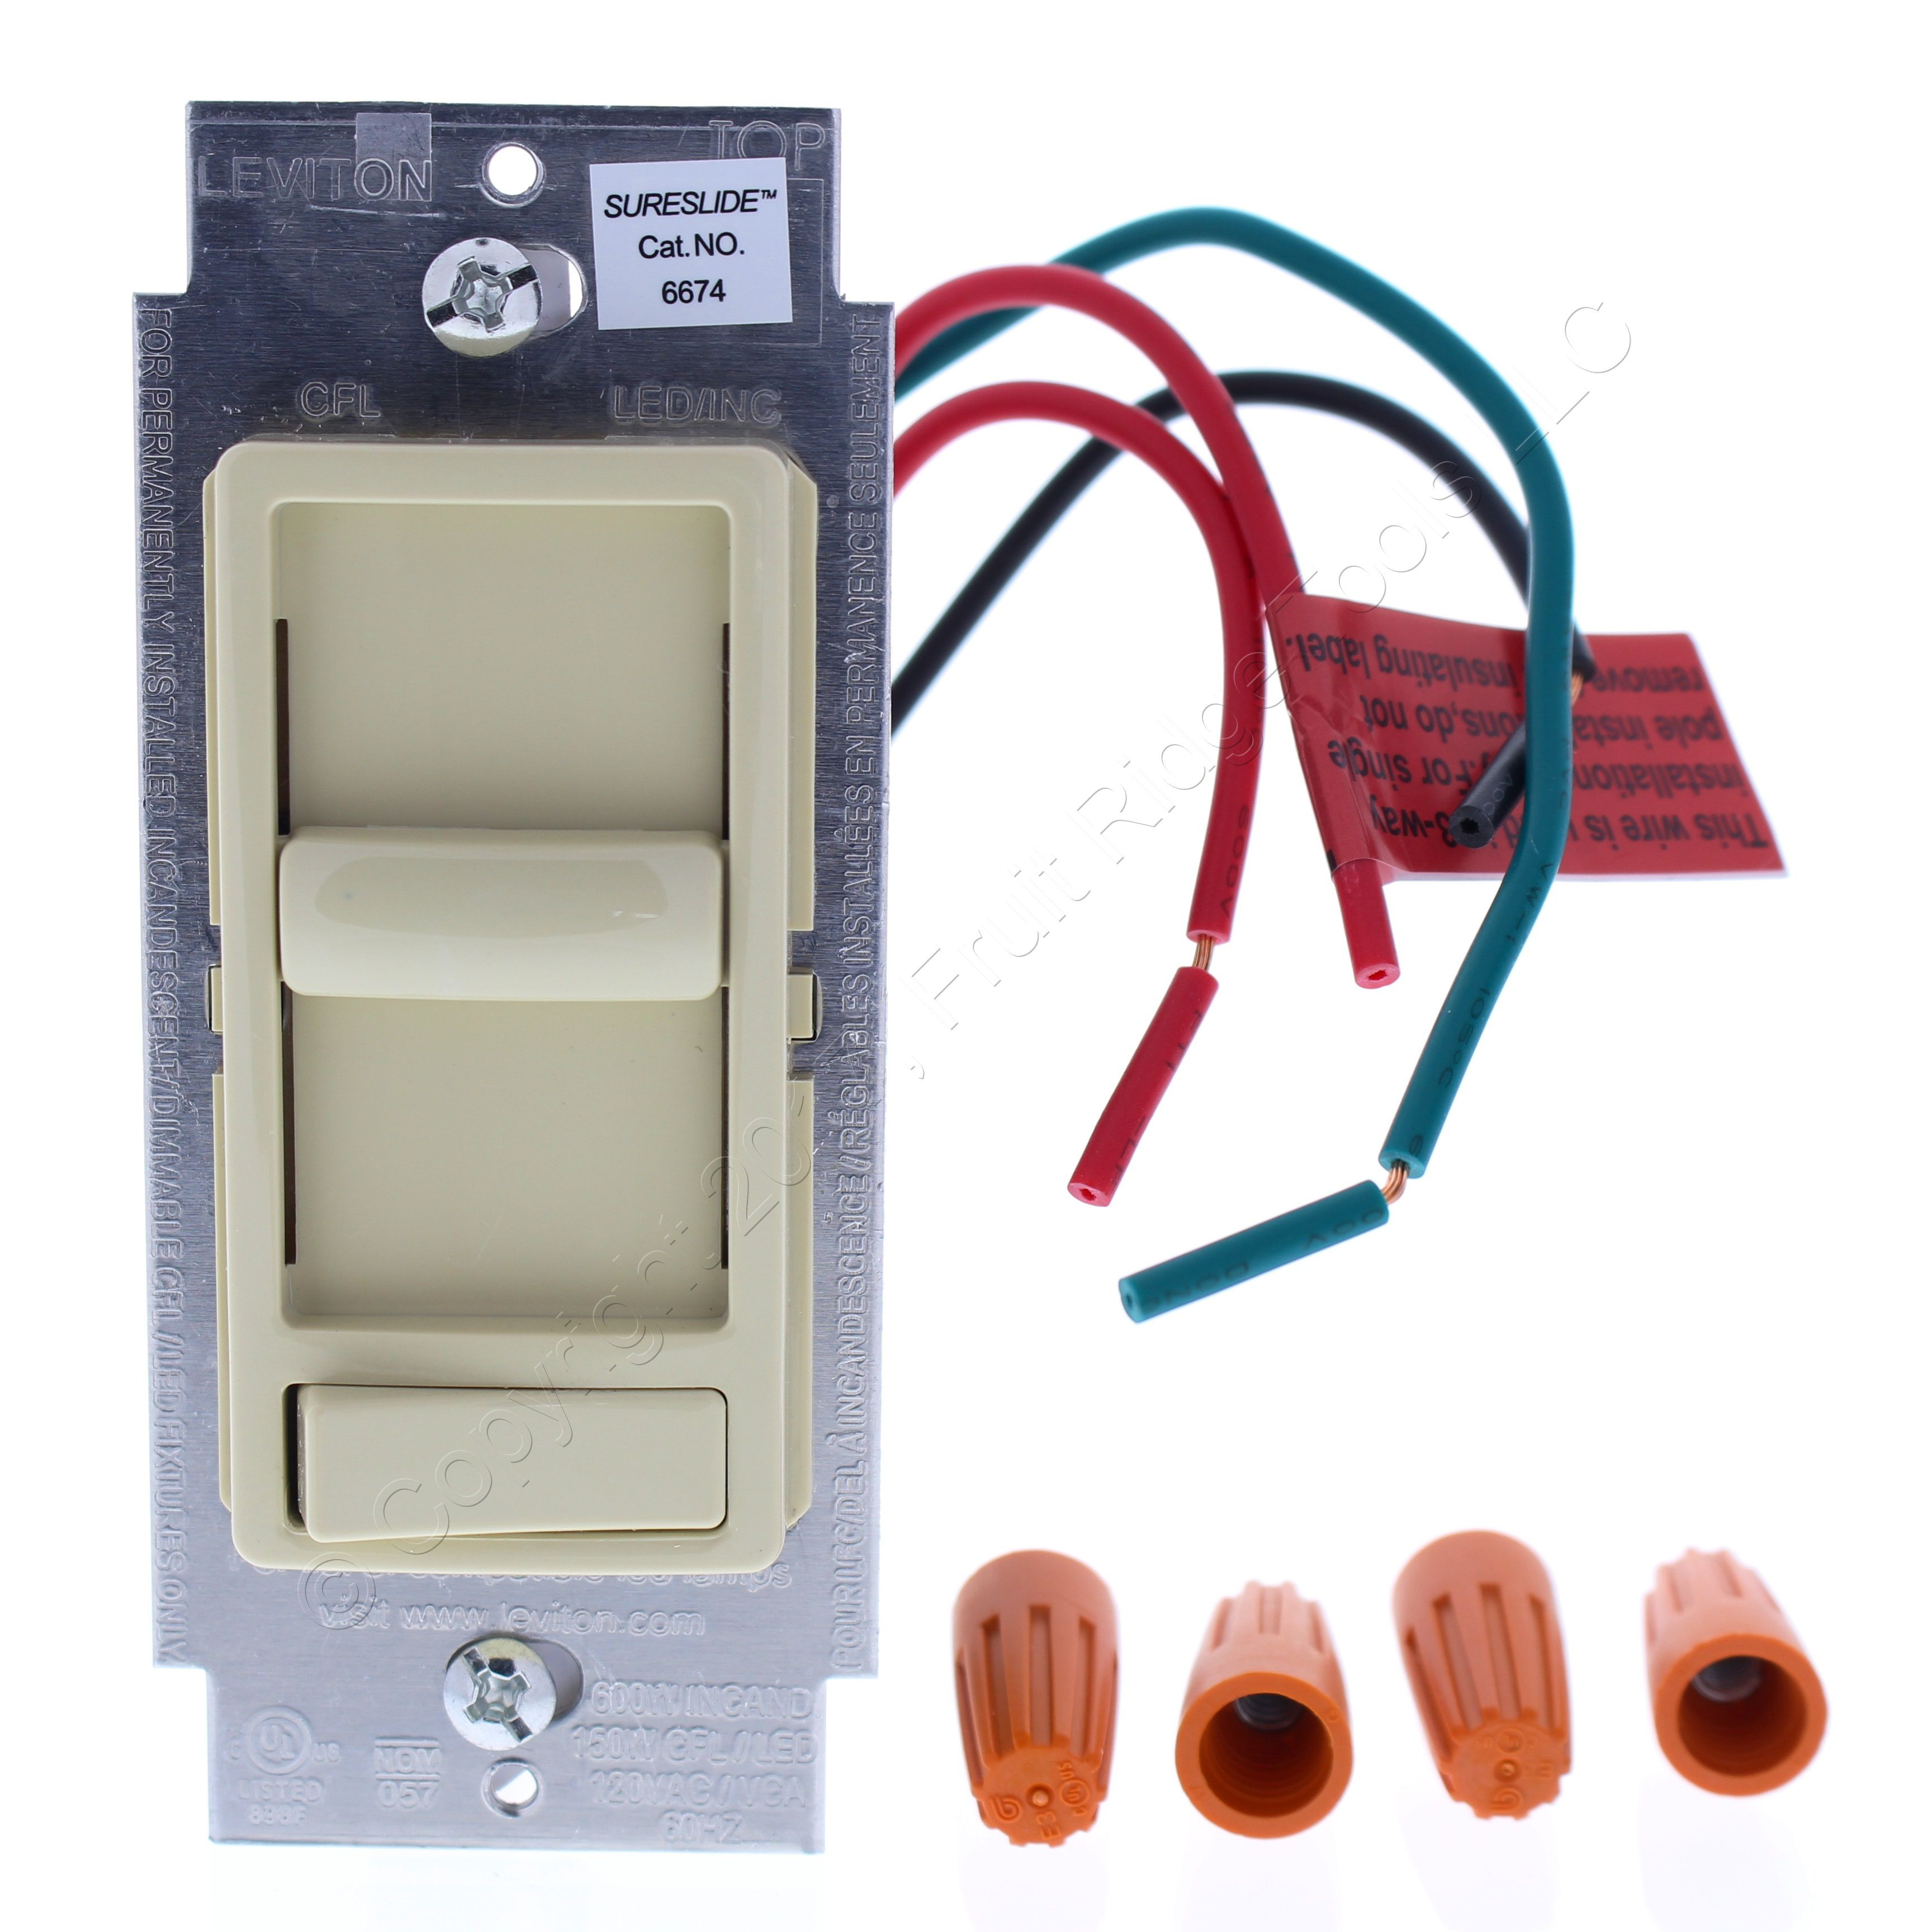 New Leviton Ivory Decora Slide Dimmer Switch Preset LED/CFL 3-Way ...